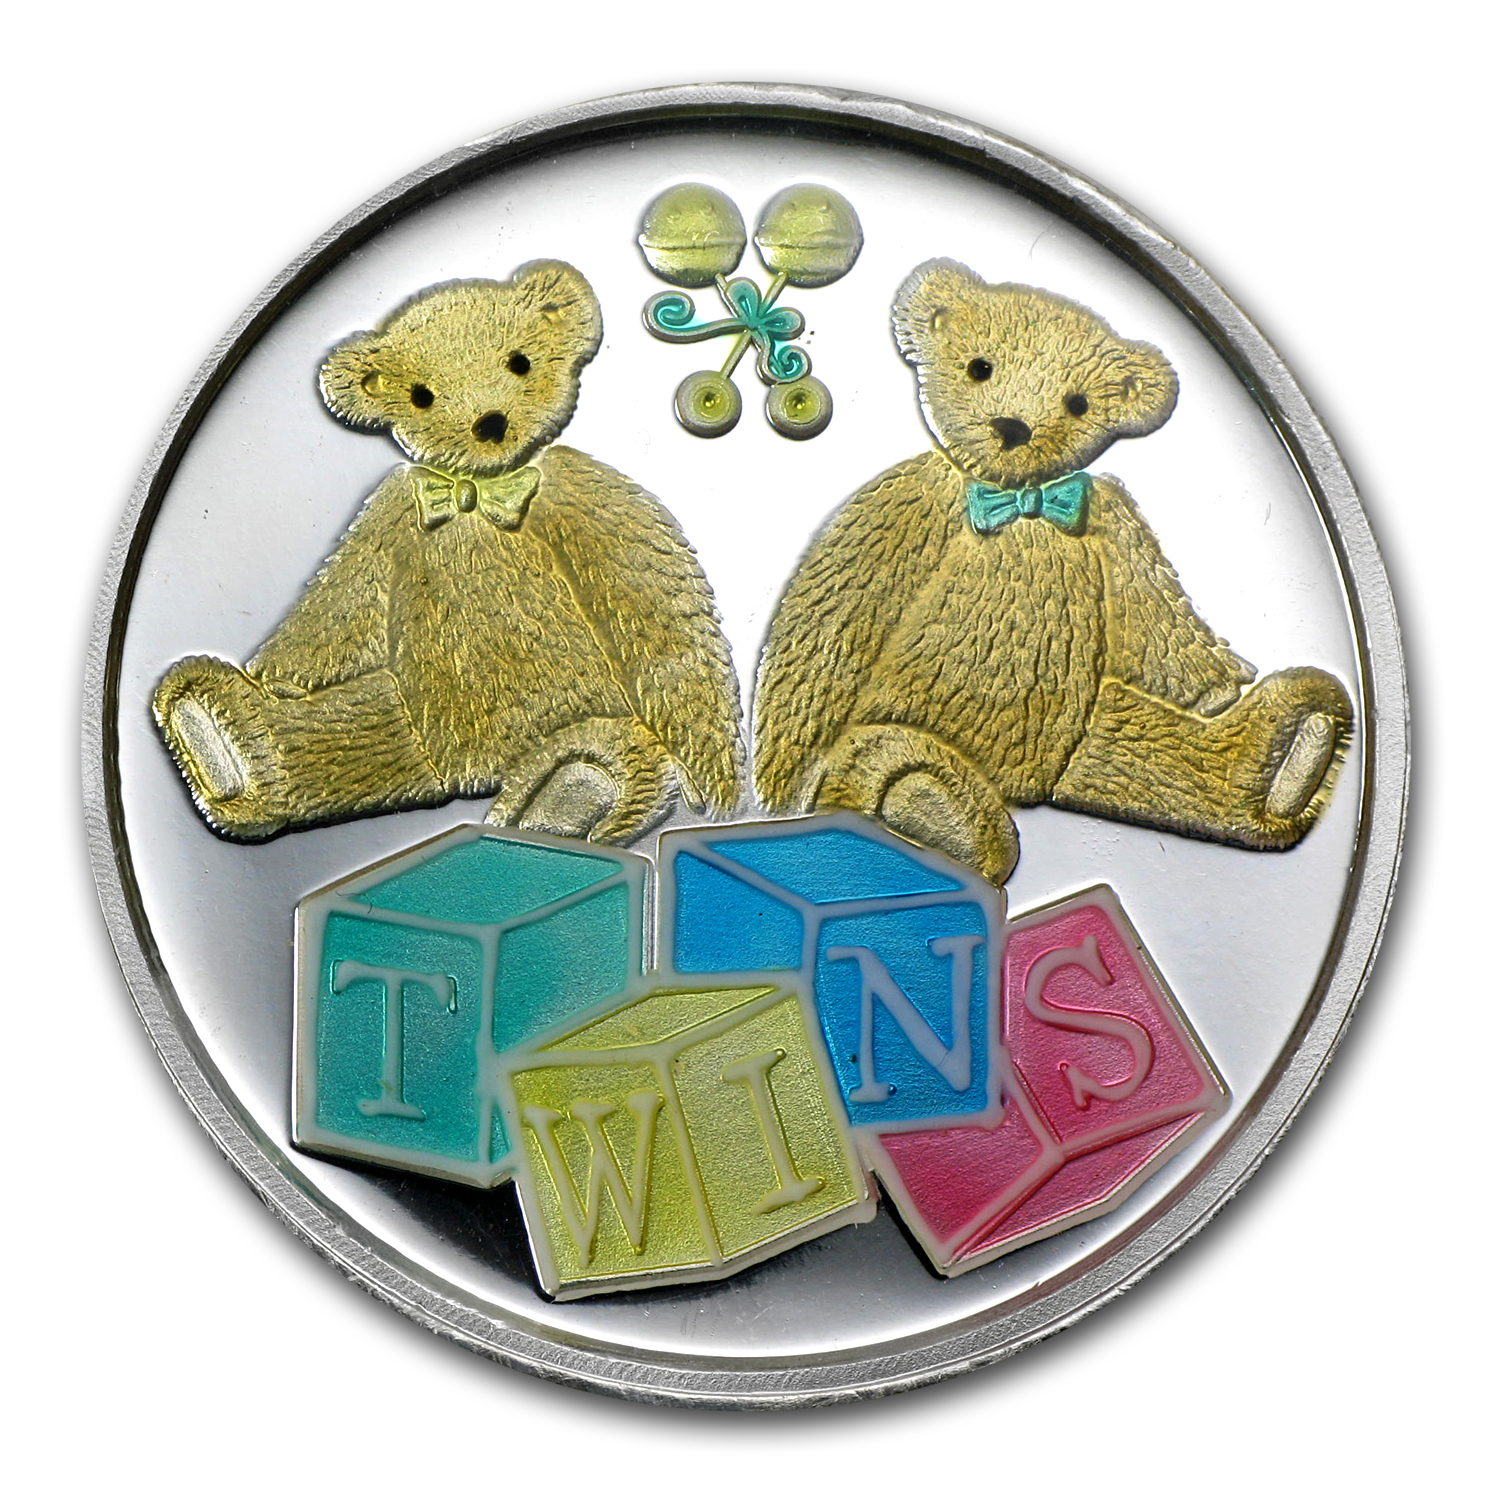 1 oz Silver Round - Twin Baby (Enameled, w/Box & Capsule)